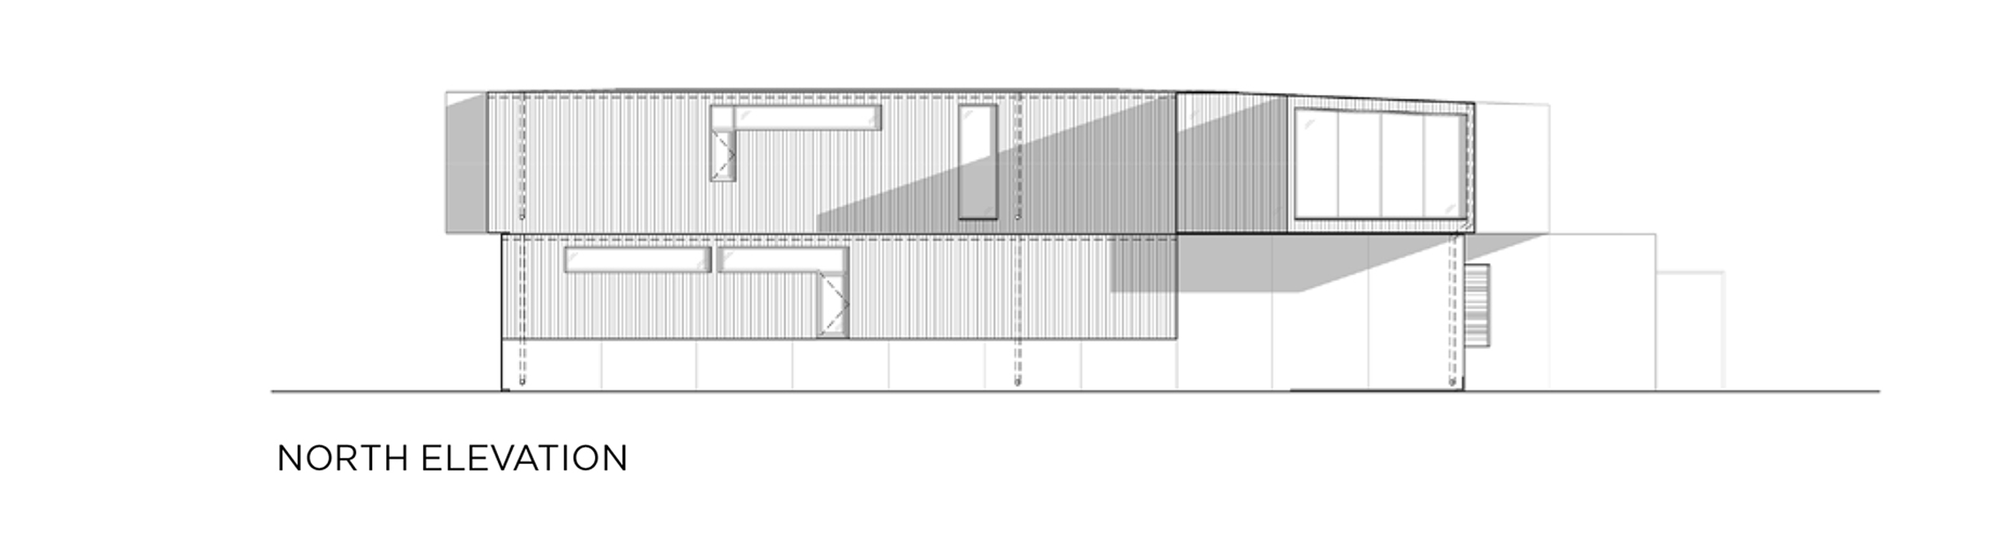 baulinder-haus-hufft-projects_north_elevation